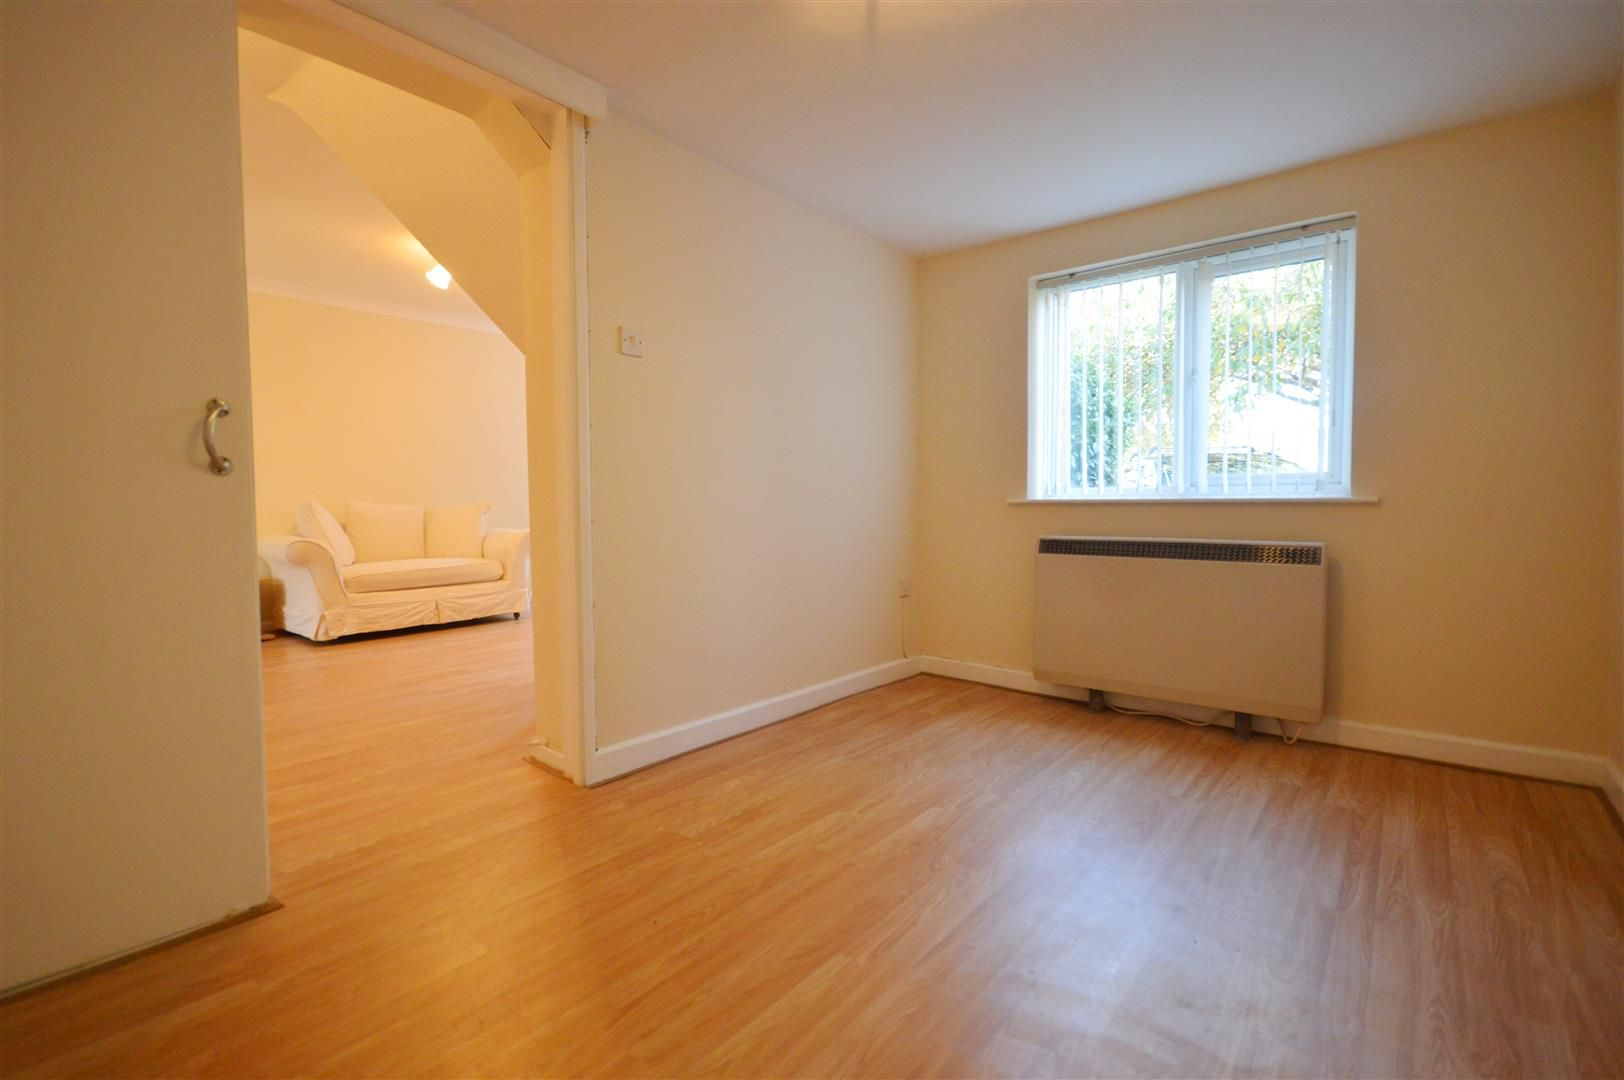 3 bed semi-detached to rent in Leominster 5